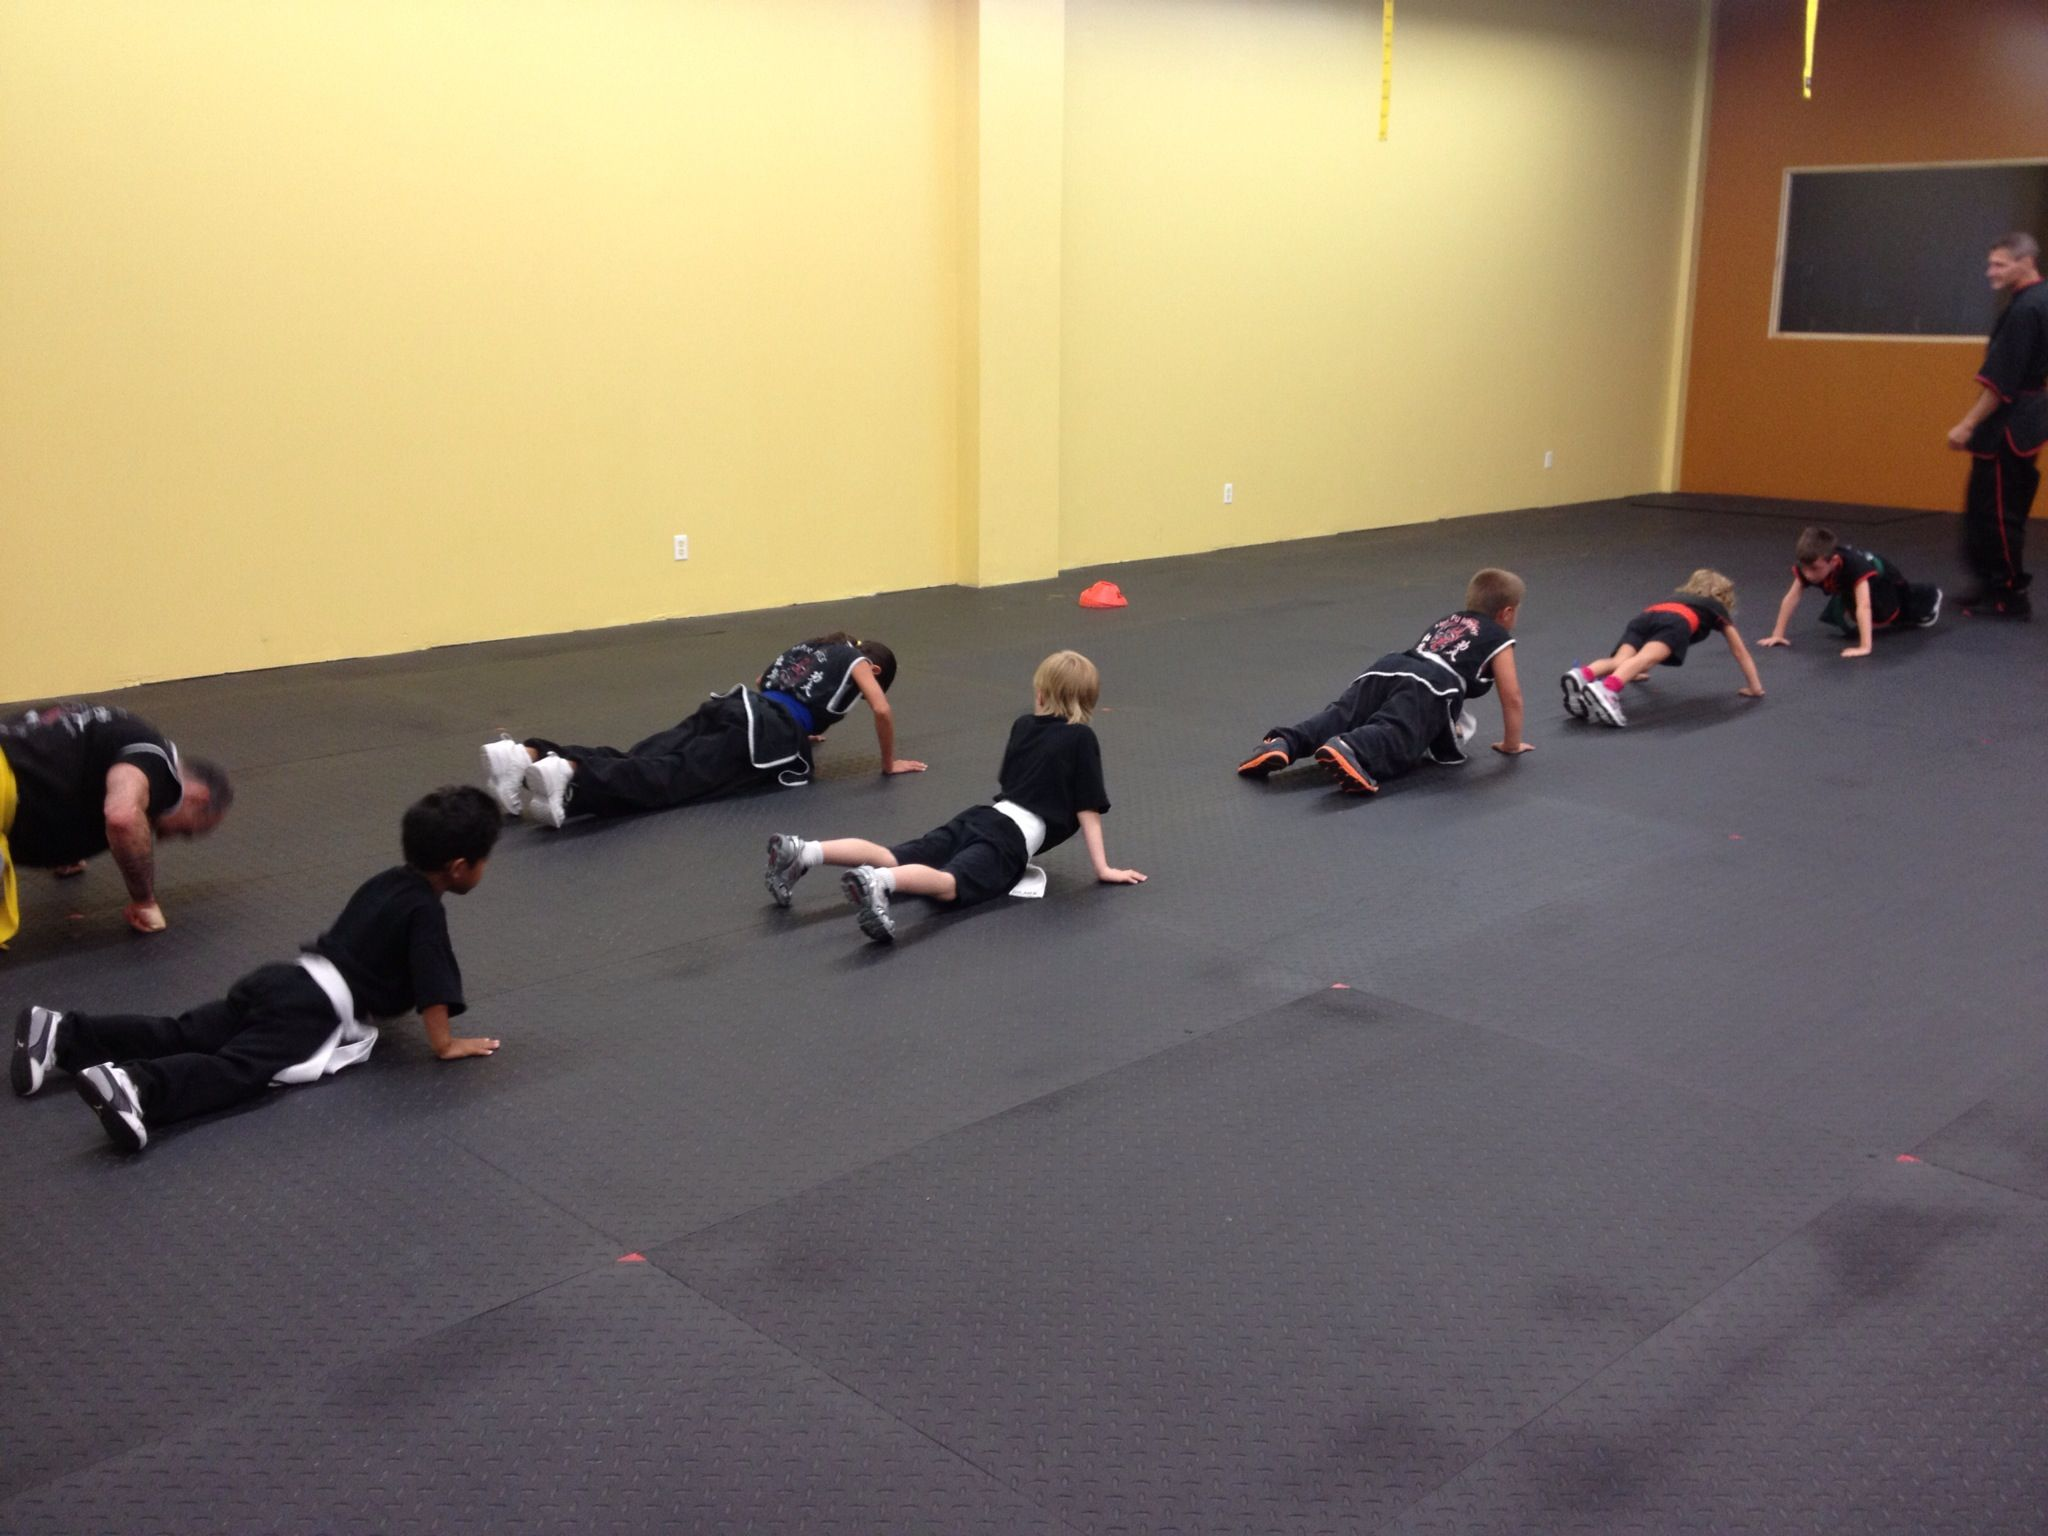 Practicing our push ups to make us stronger